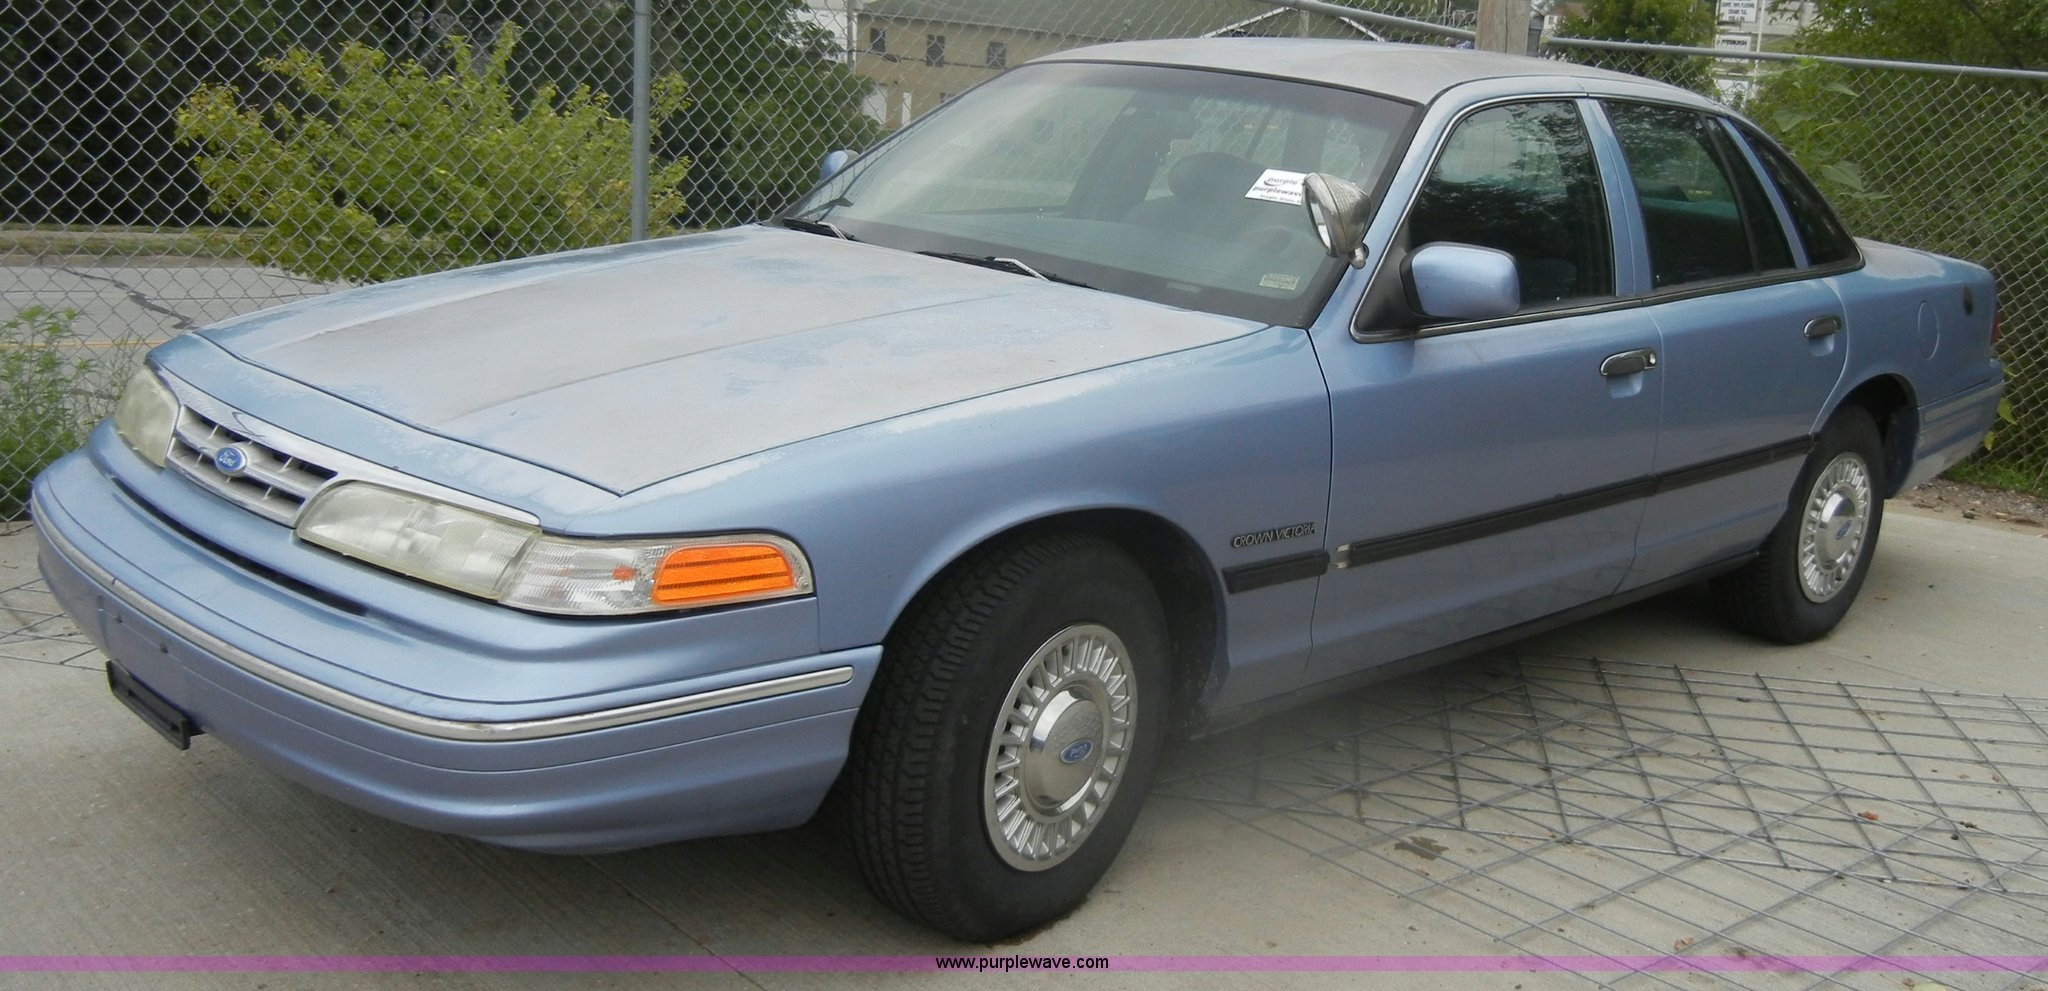 1995 Ford Crown Victoria Item D4404 Sold Tuesday Septem Image For